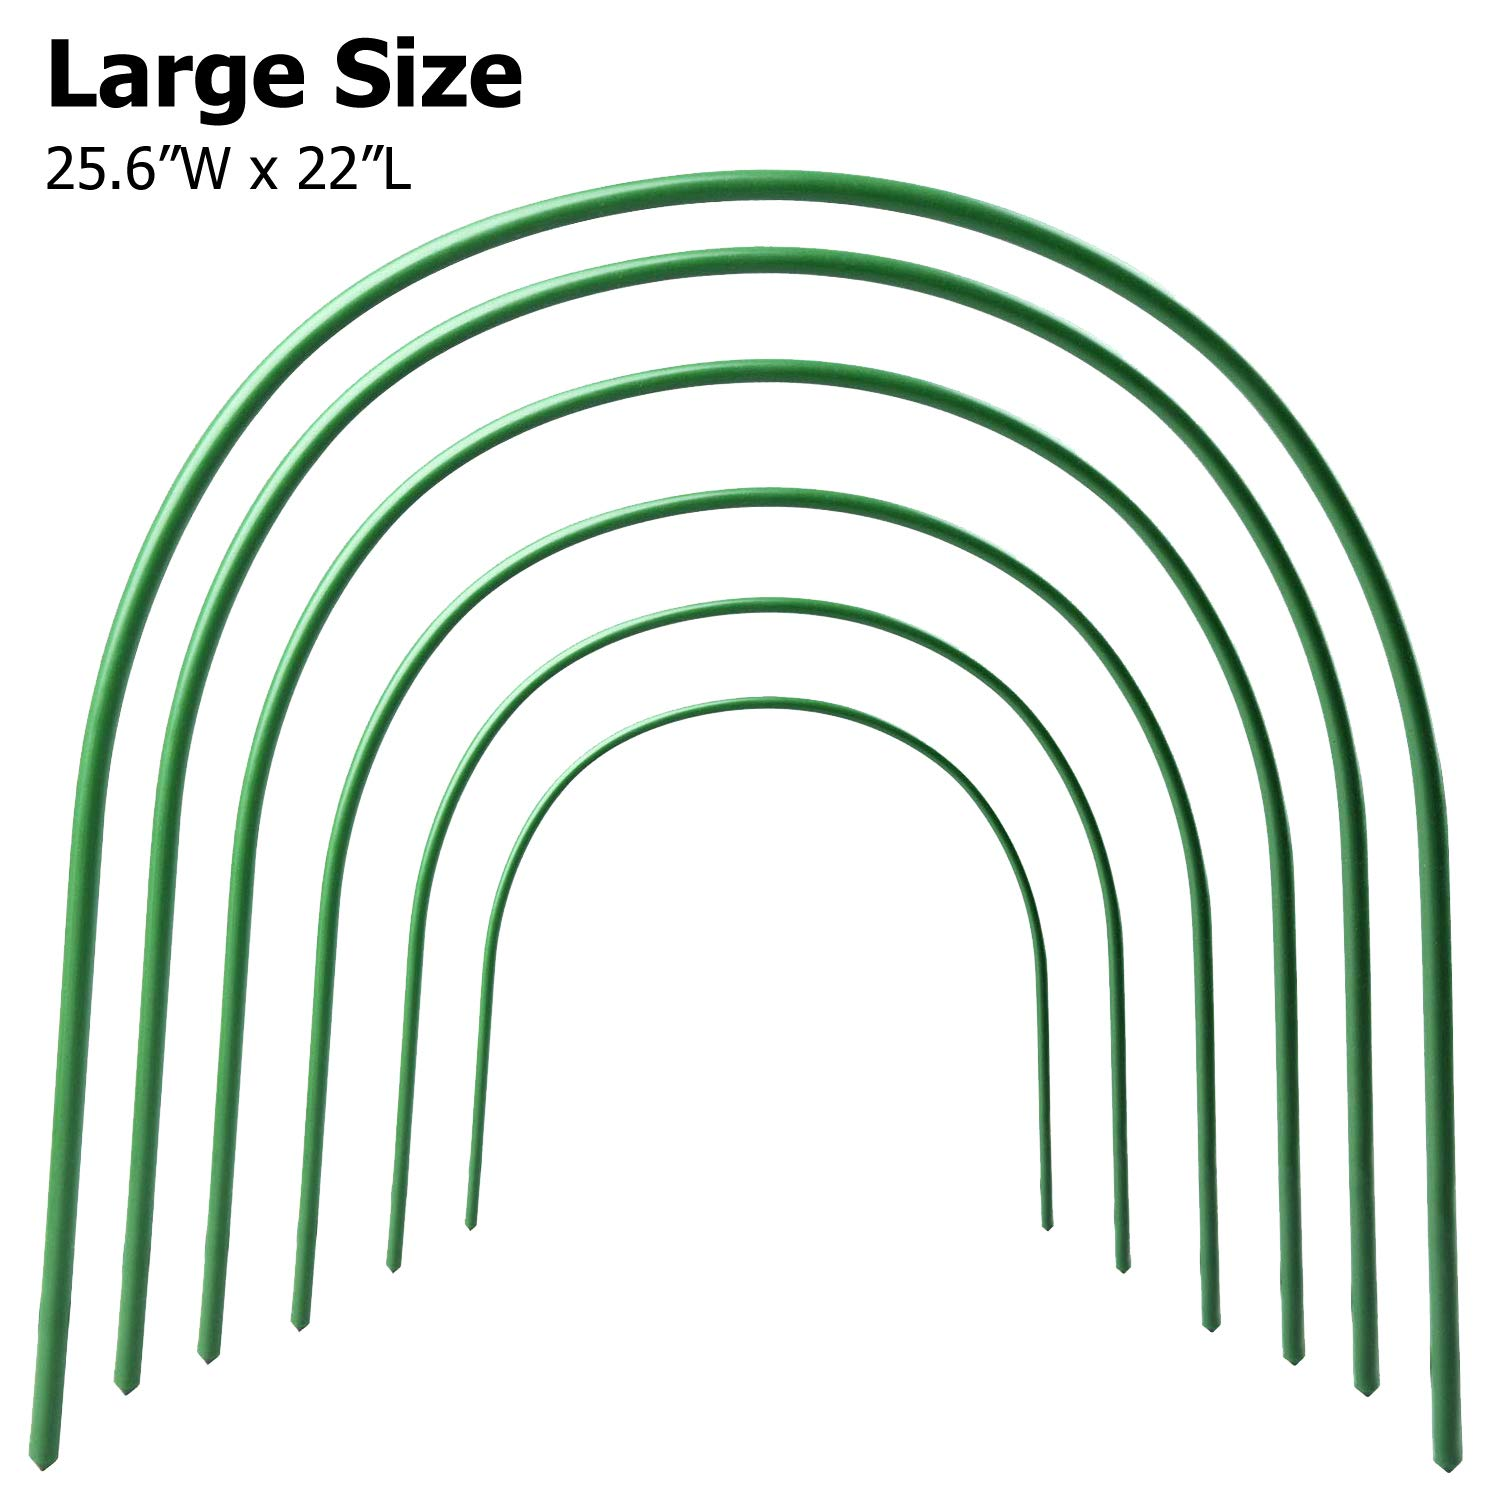 B&P 6Pack Greenhouse Hoops (22'' x 25.6'') Garden Hoops 4.9ft Long Plant Hoops Rust-Free Grow Tunnel, Garden Tunnel Hoop Grow Tunnel Support Hoops for Garden Stakes Fabric- Large